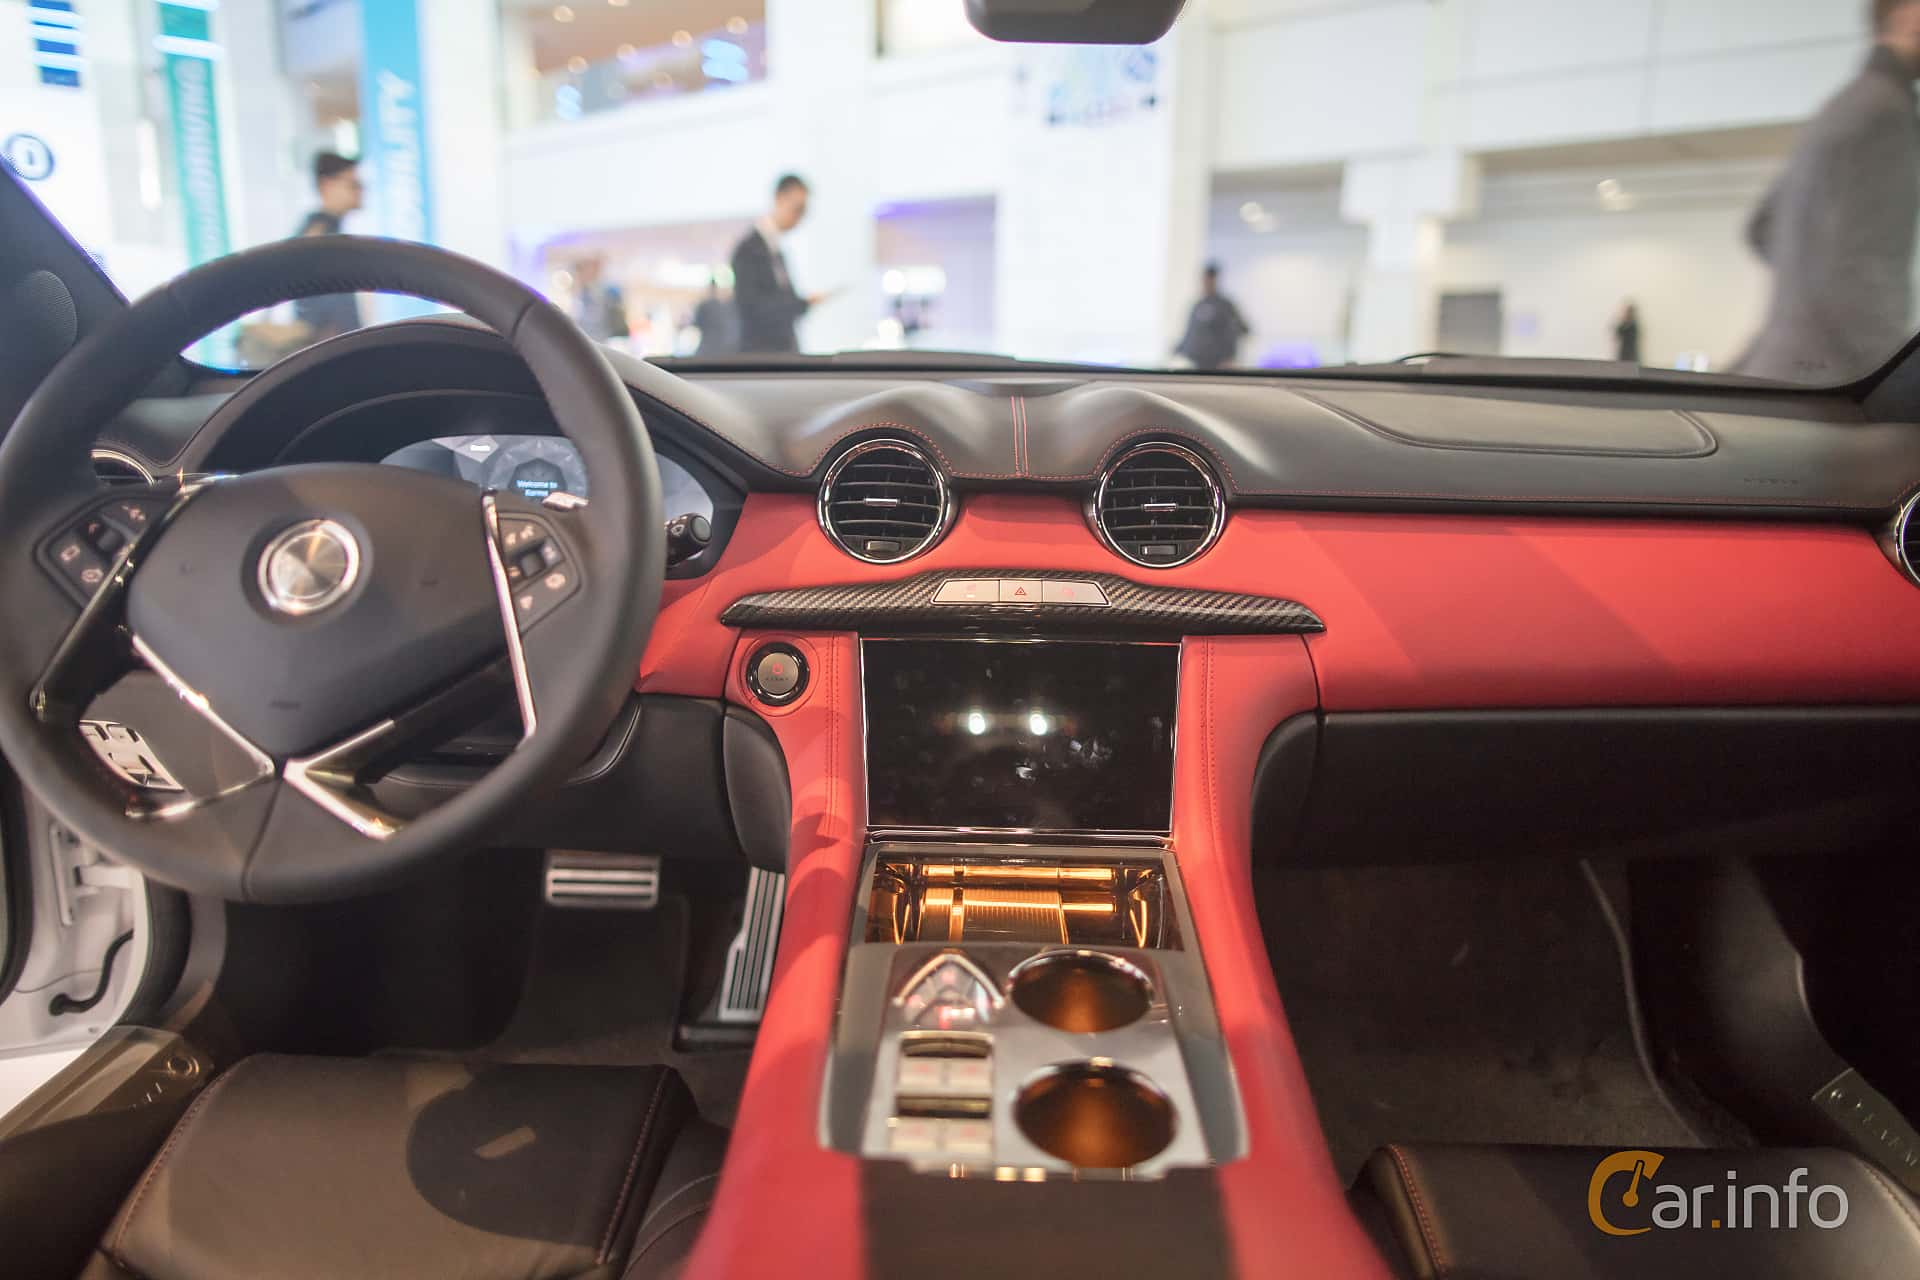 Interior of Karma Revero 2.0 + 21.4 kWh Prundletronic, 409ps, 2018 at North American